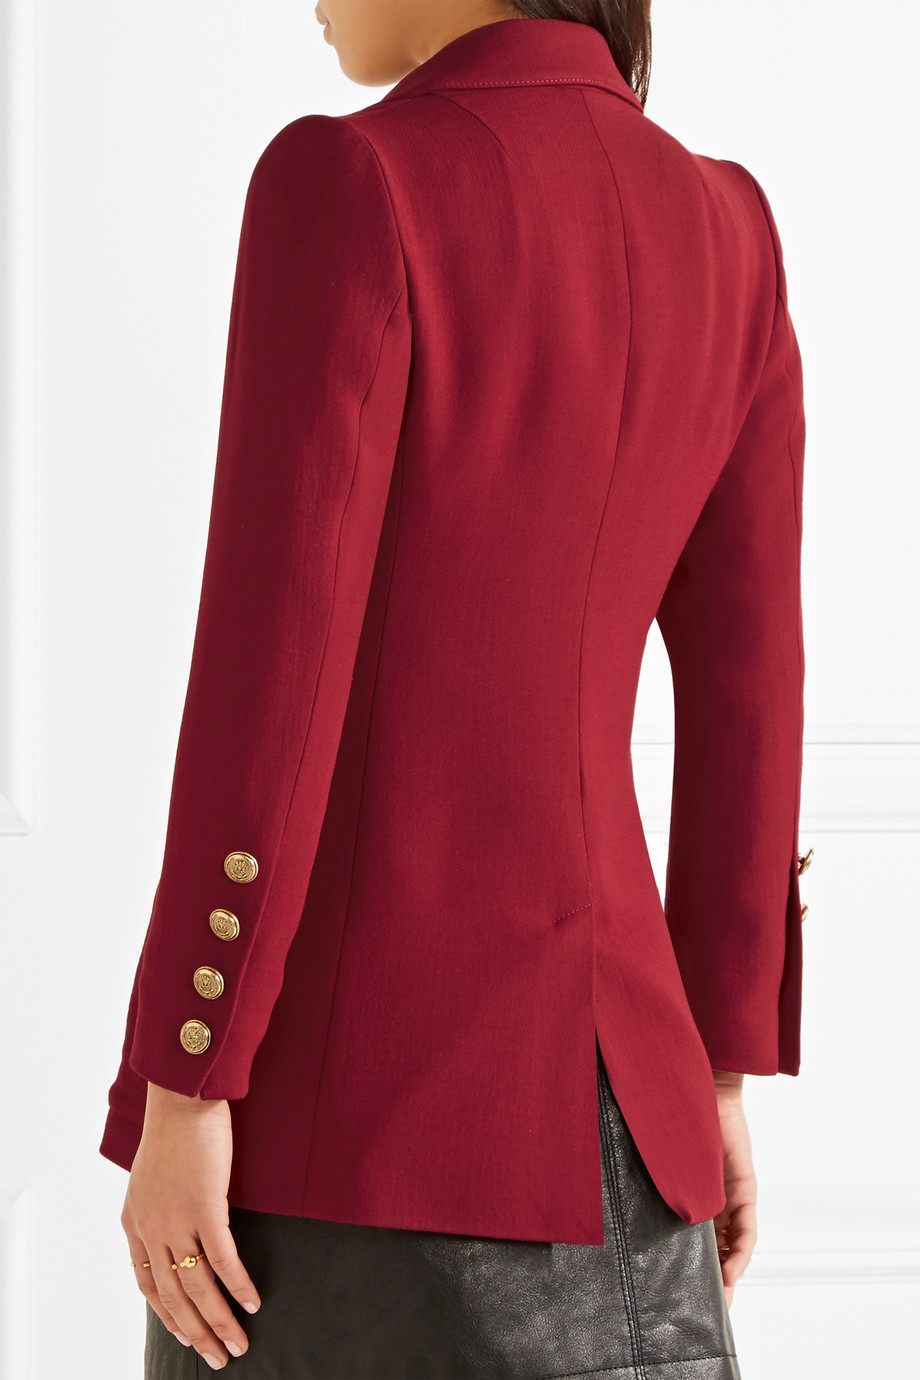 Philosophy di Lorenzo Serafini jacket in red